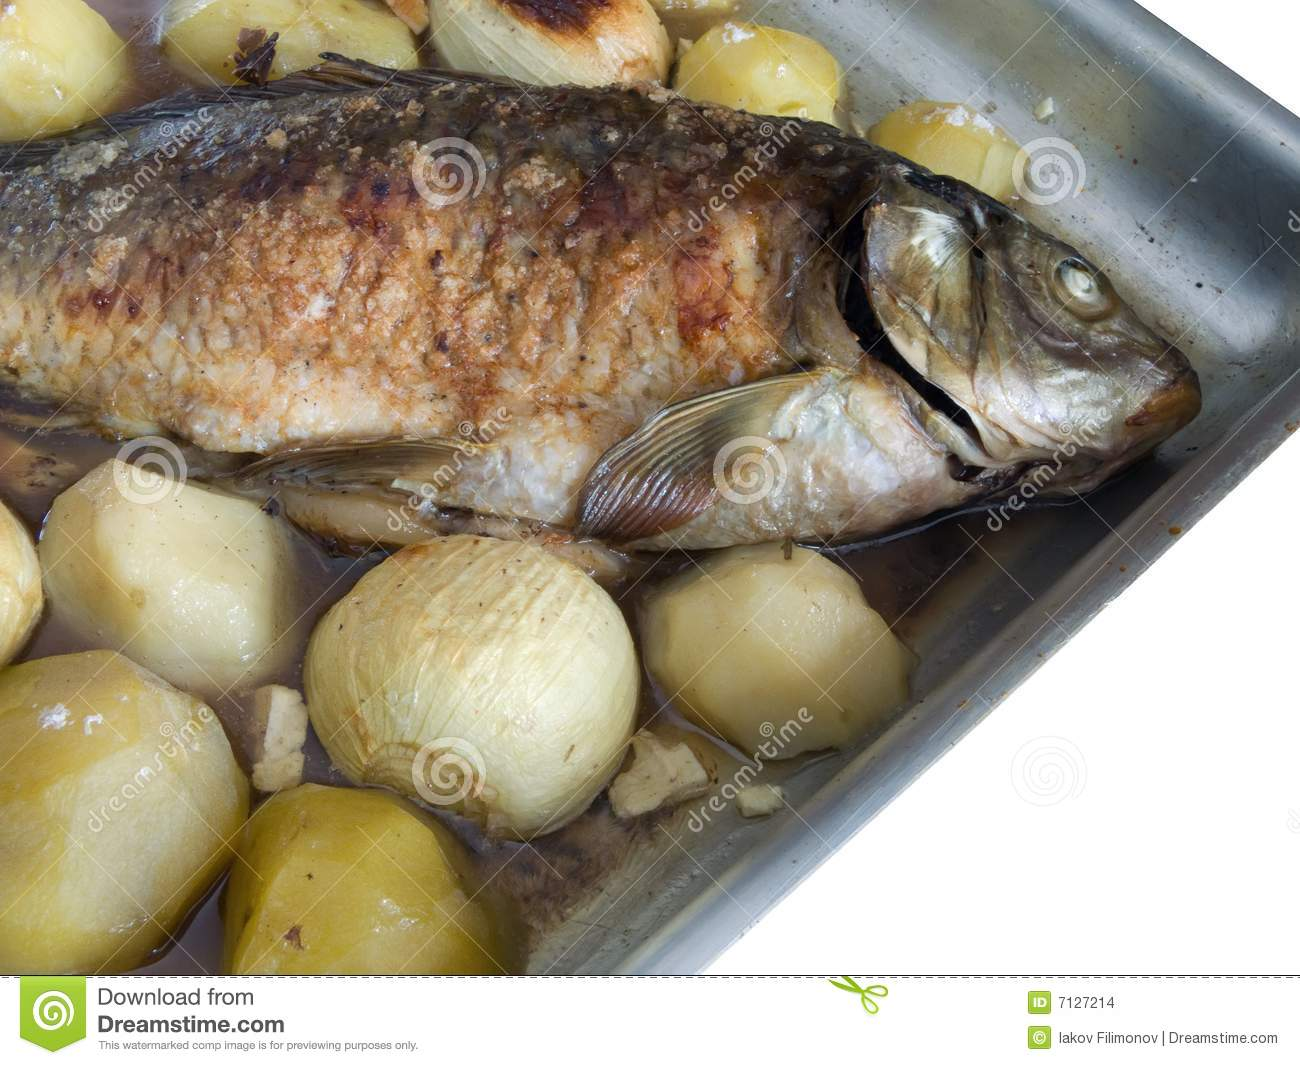 how to cook carp fish